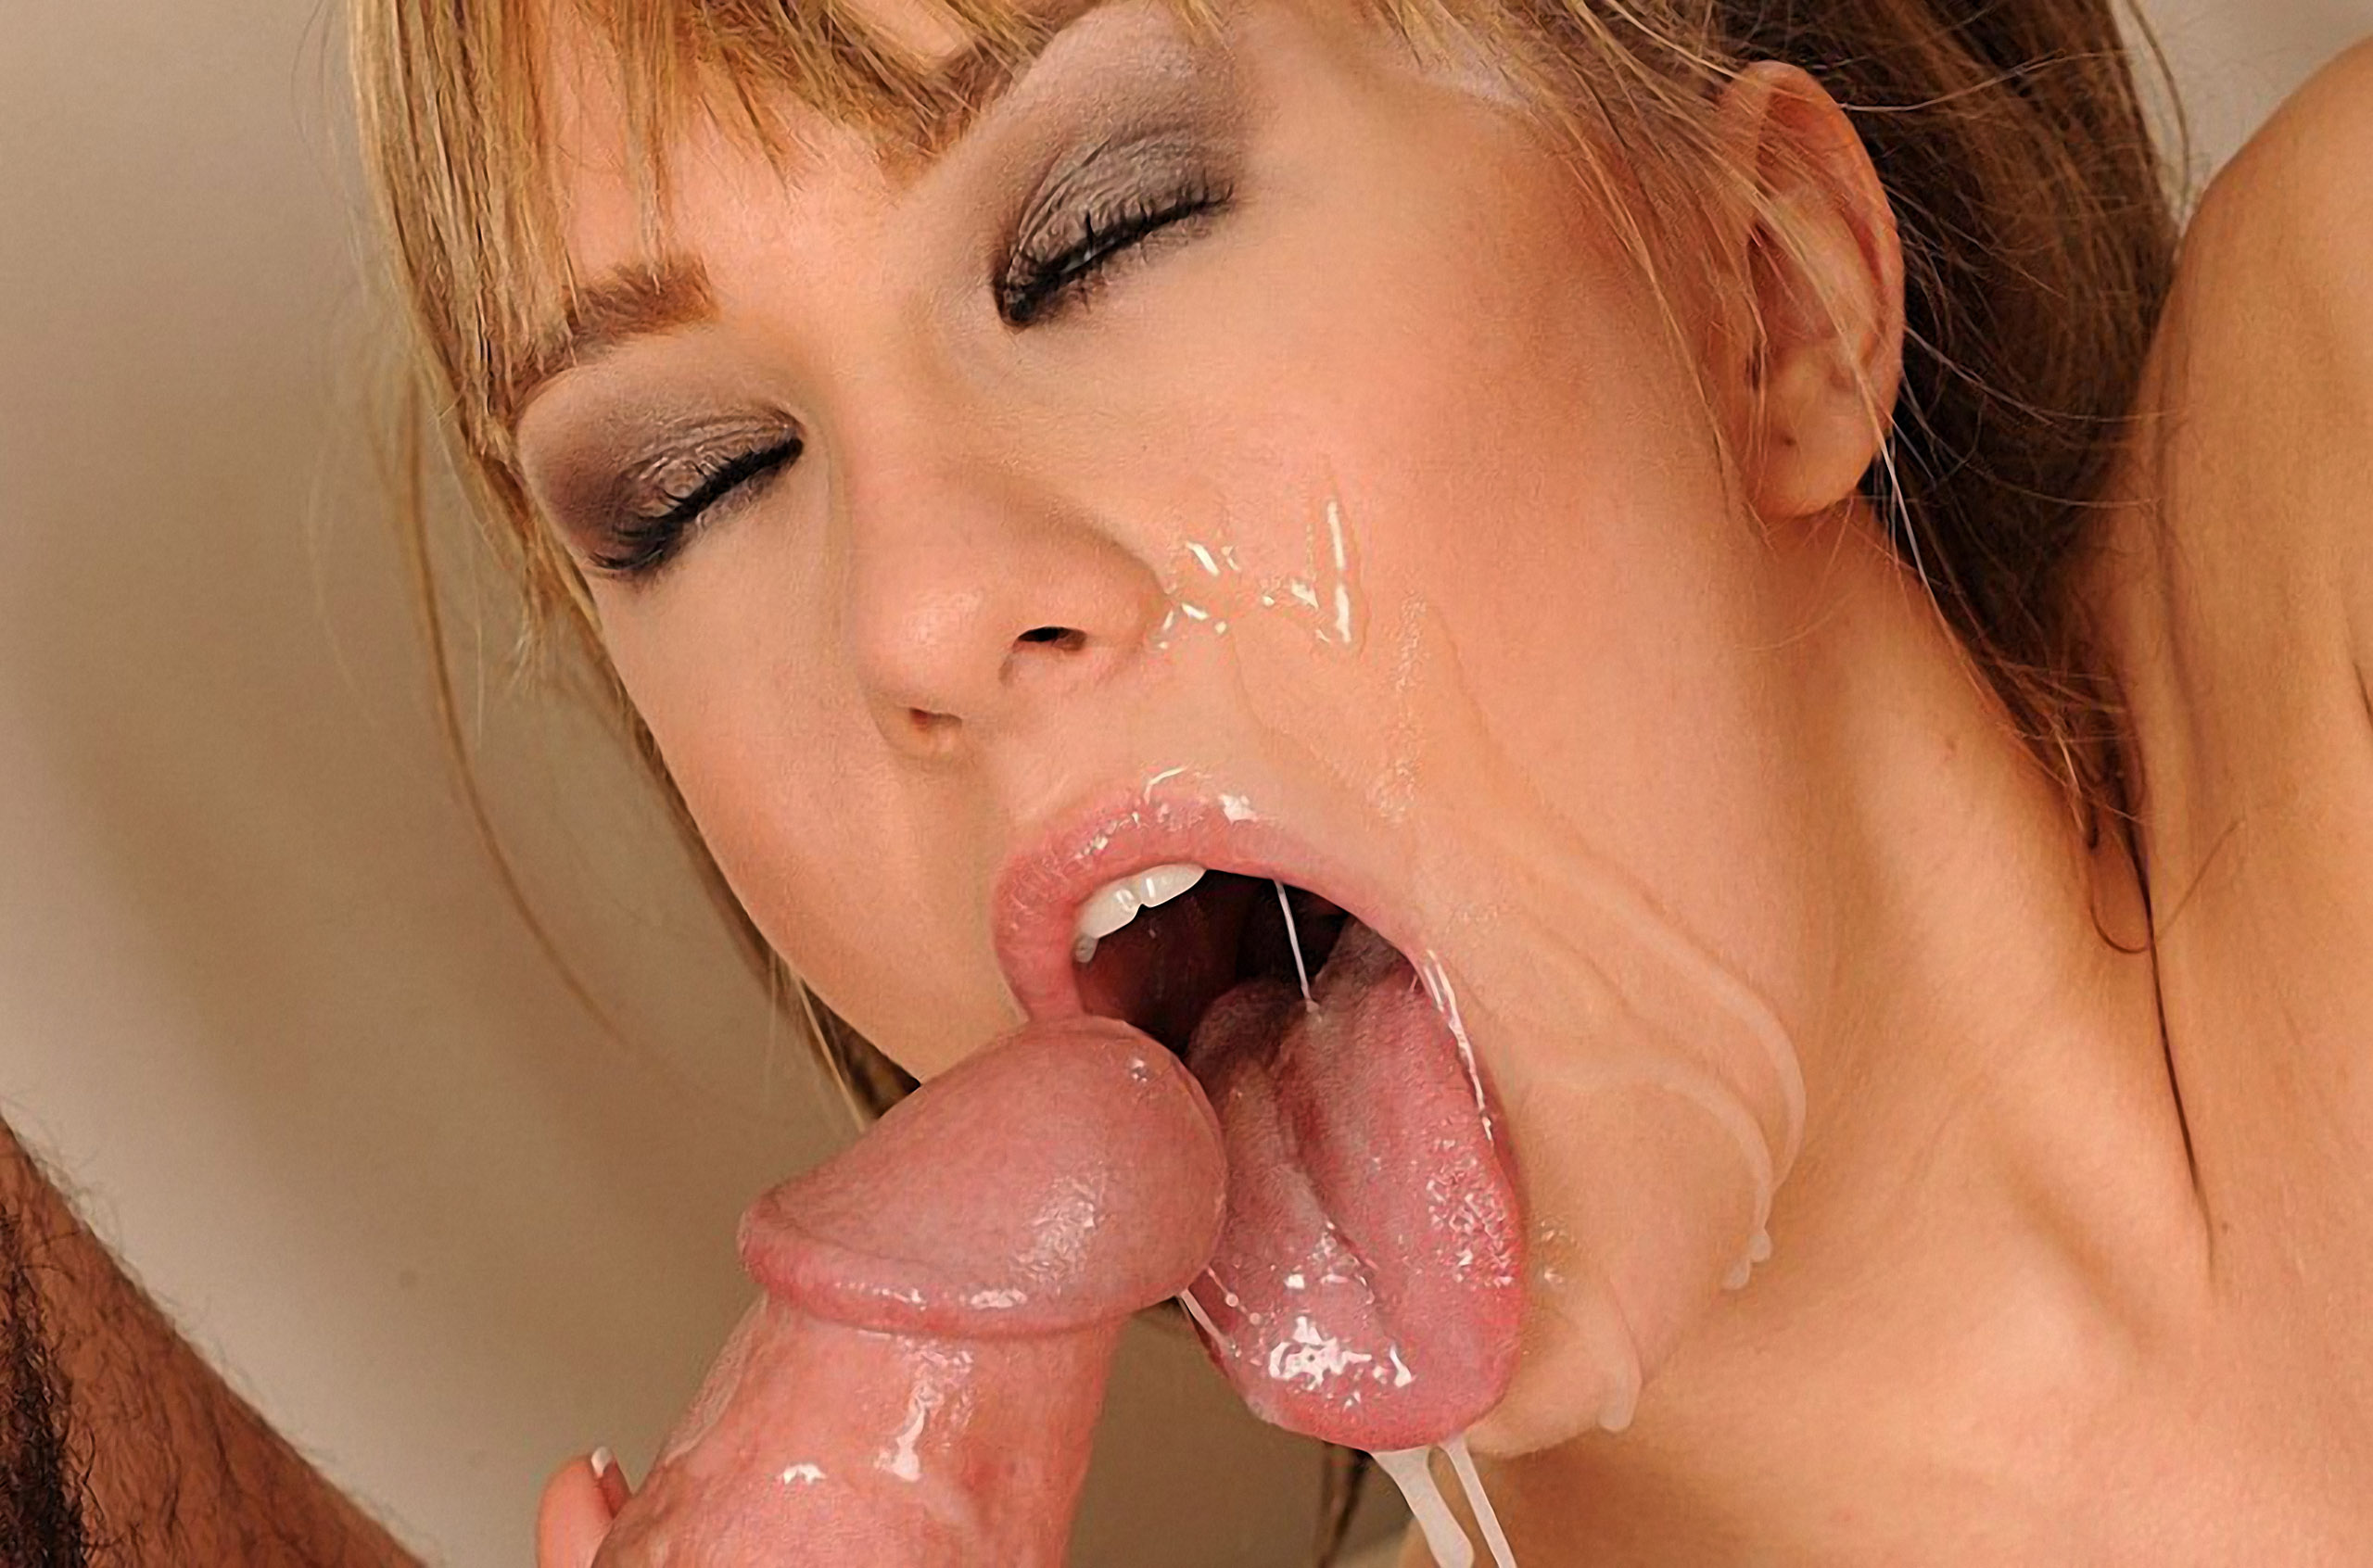 Wallpaper Hardcore, Blowjob, Oral, Blond, Teen, Facial -2283